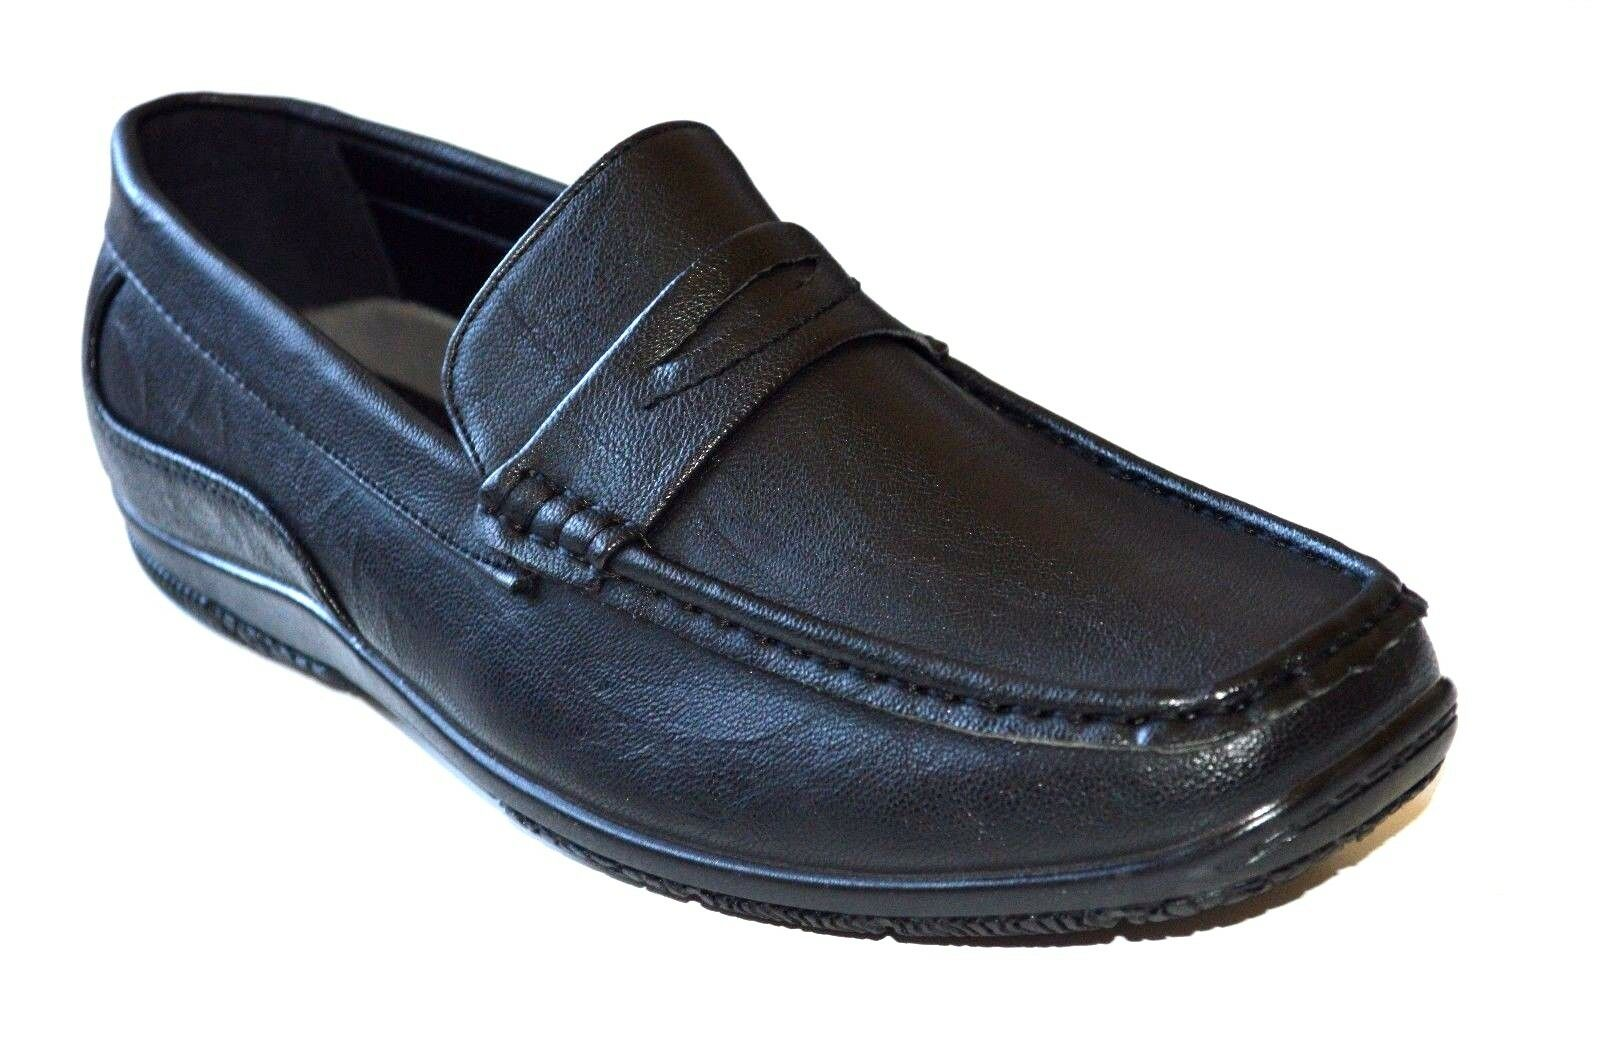 New Men's casual Driving Shoes Moc-Toe Moccasins Slip On Loafers - Black/Pla 01